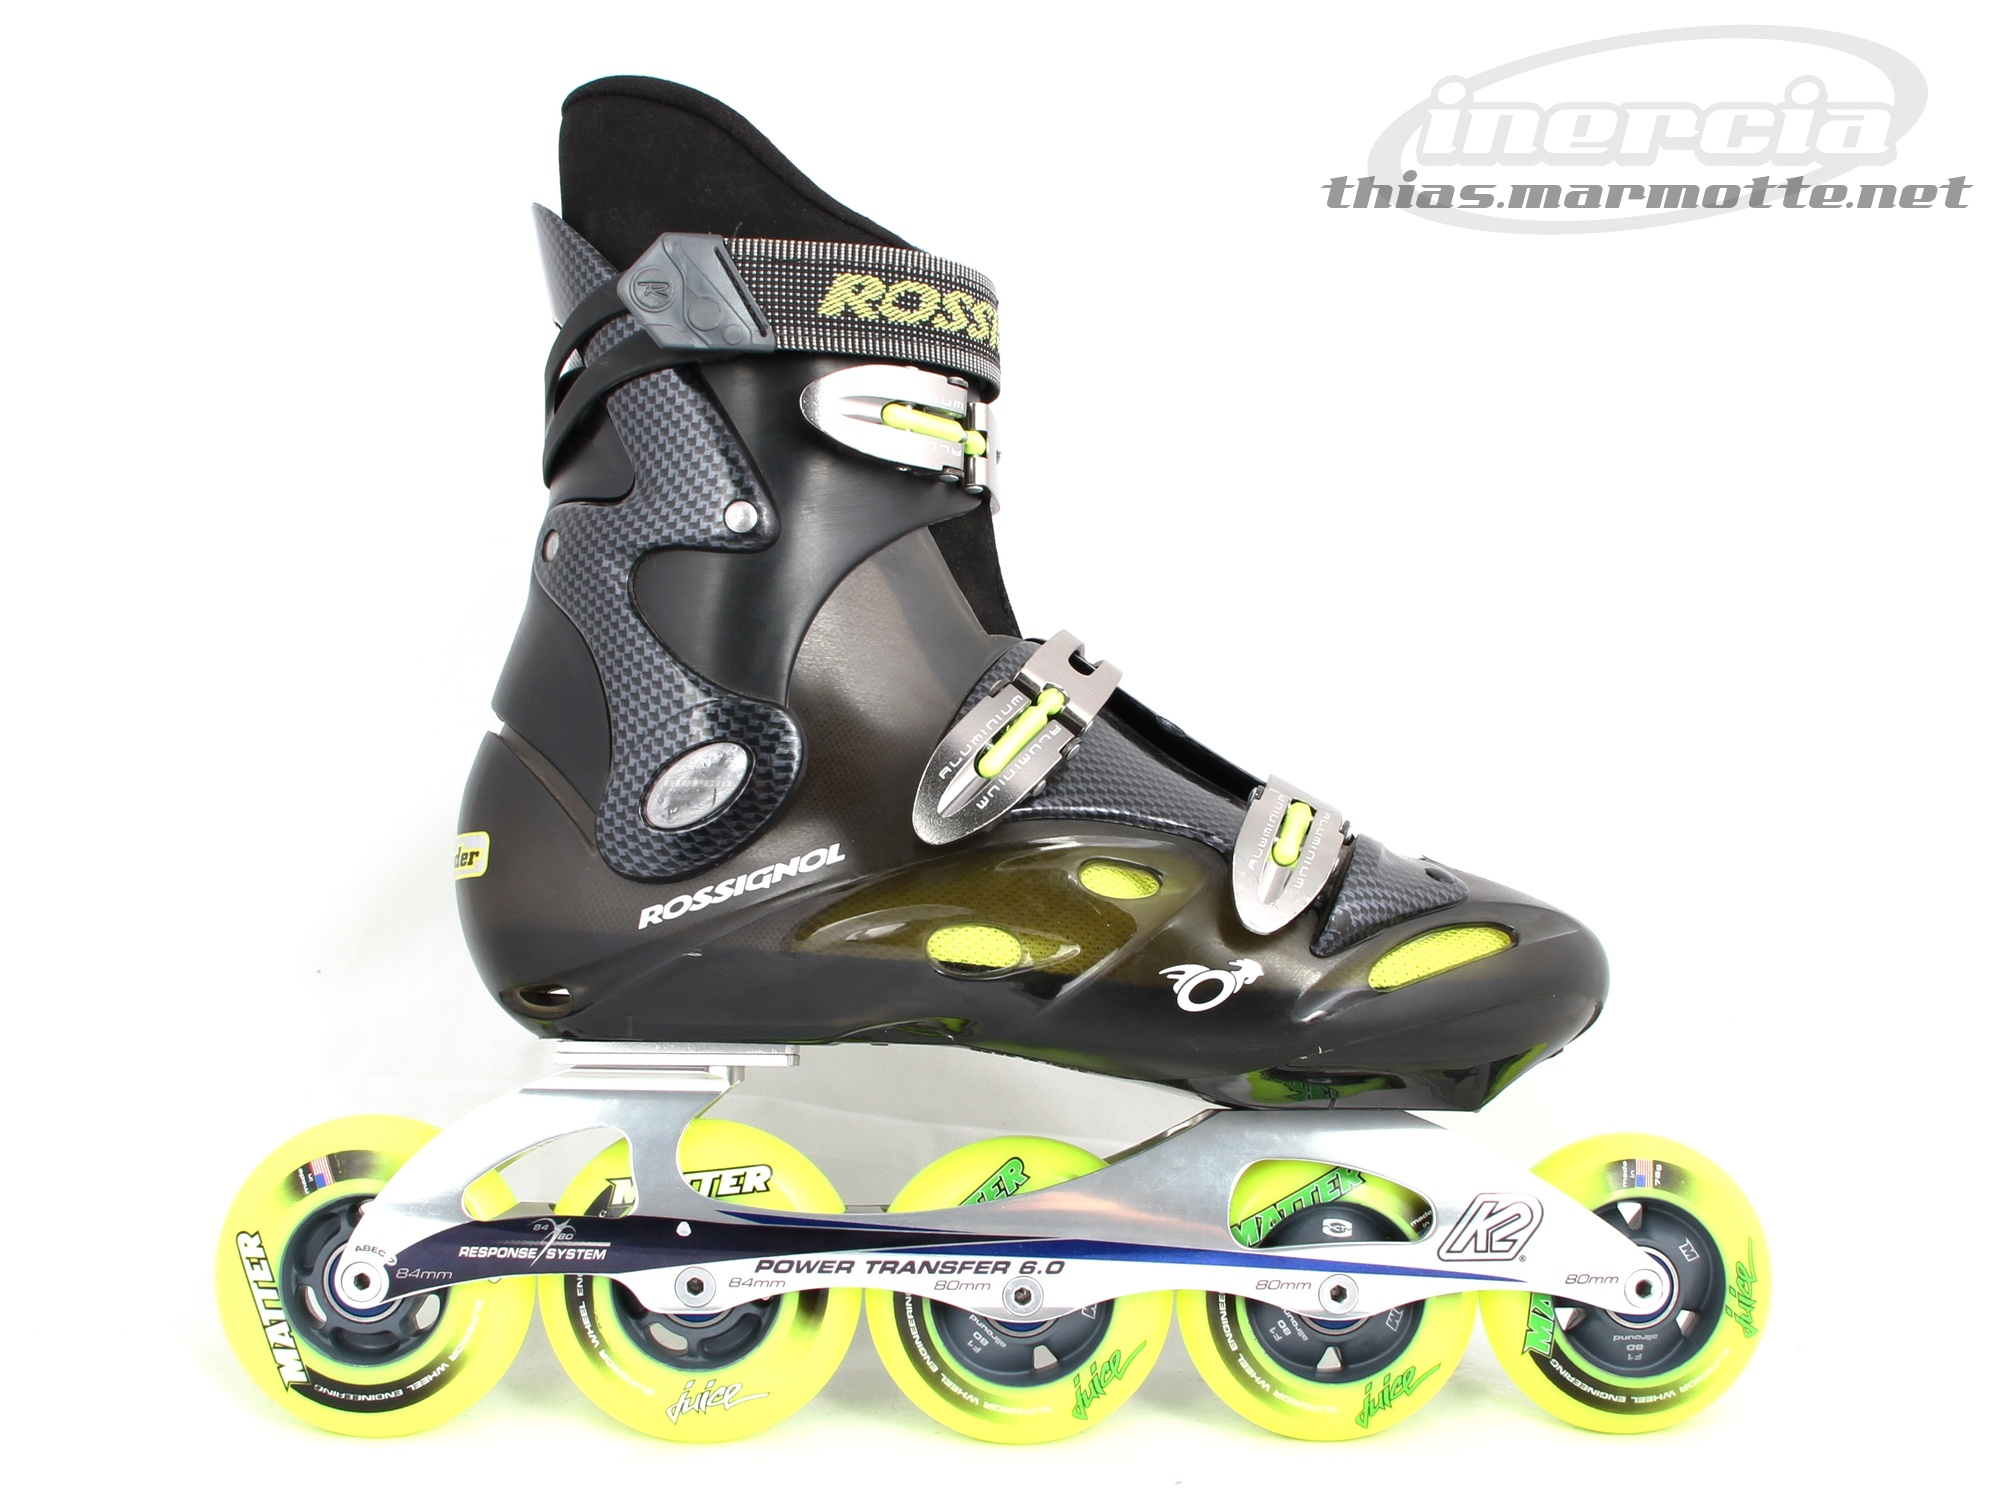 Rossignol Descender Power Transfer 6.0